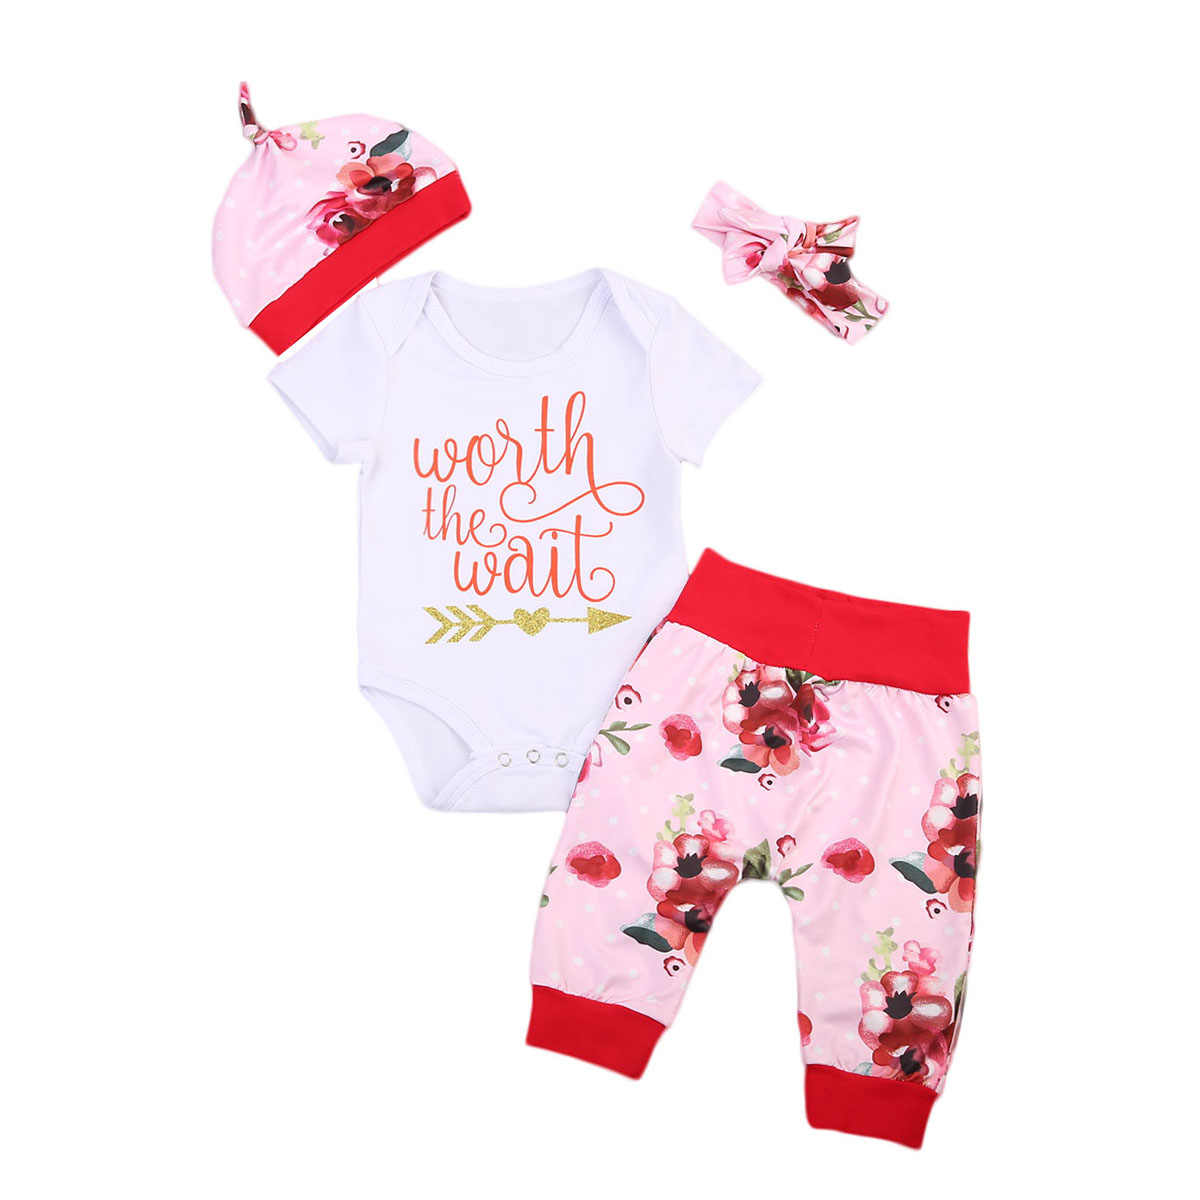 Cute Infant Newborn Baby Floral Outfits Girl Pink Tops Romper Pants Clothes Set